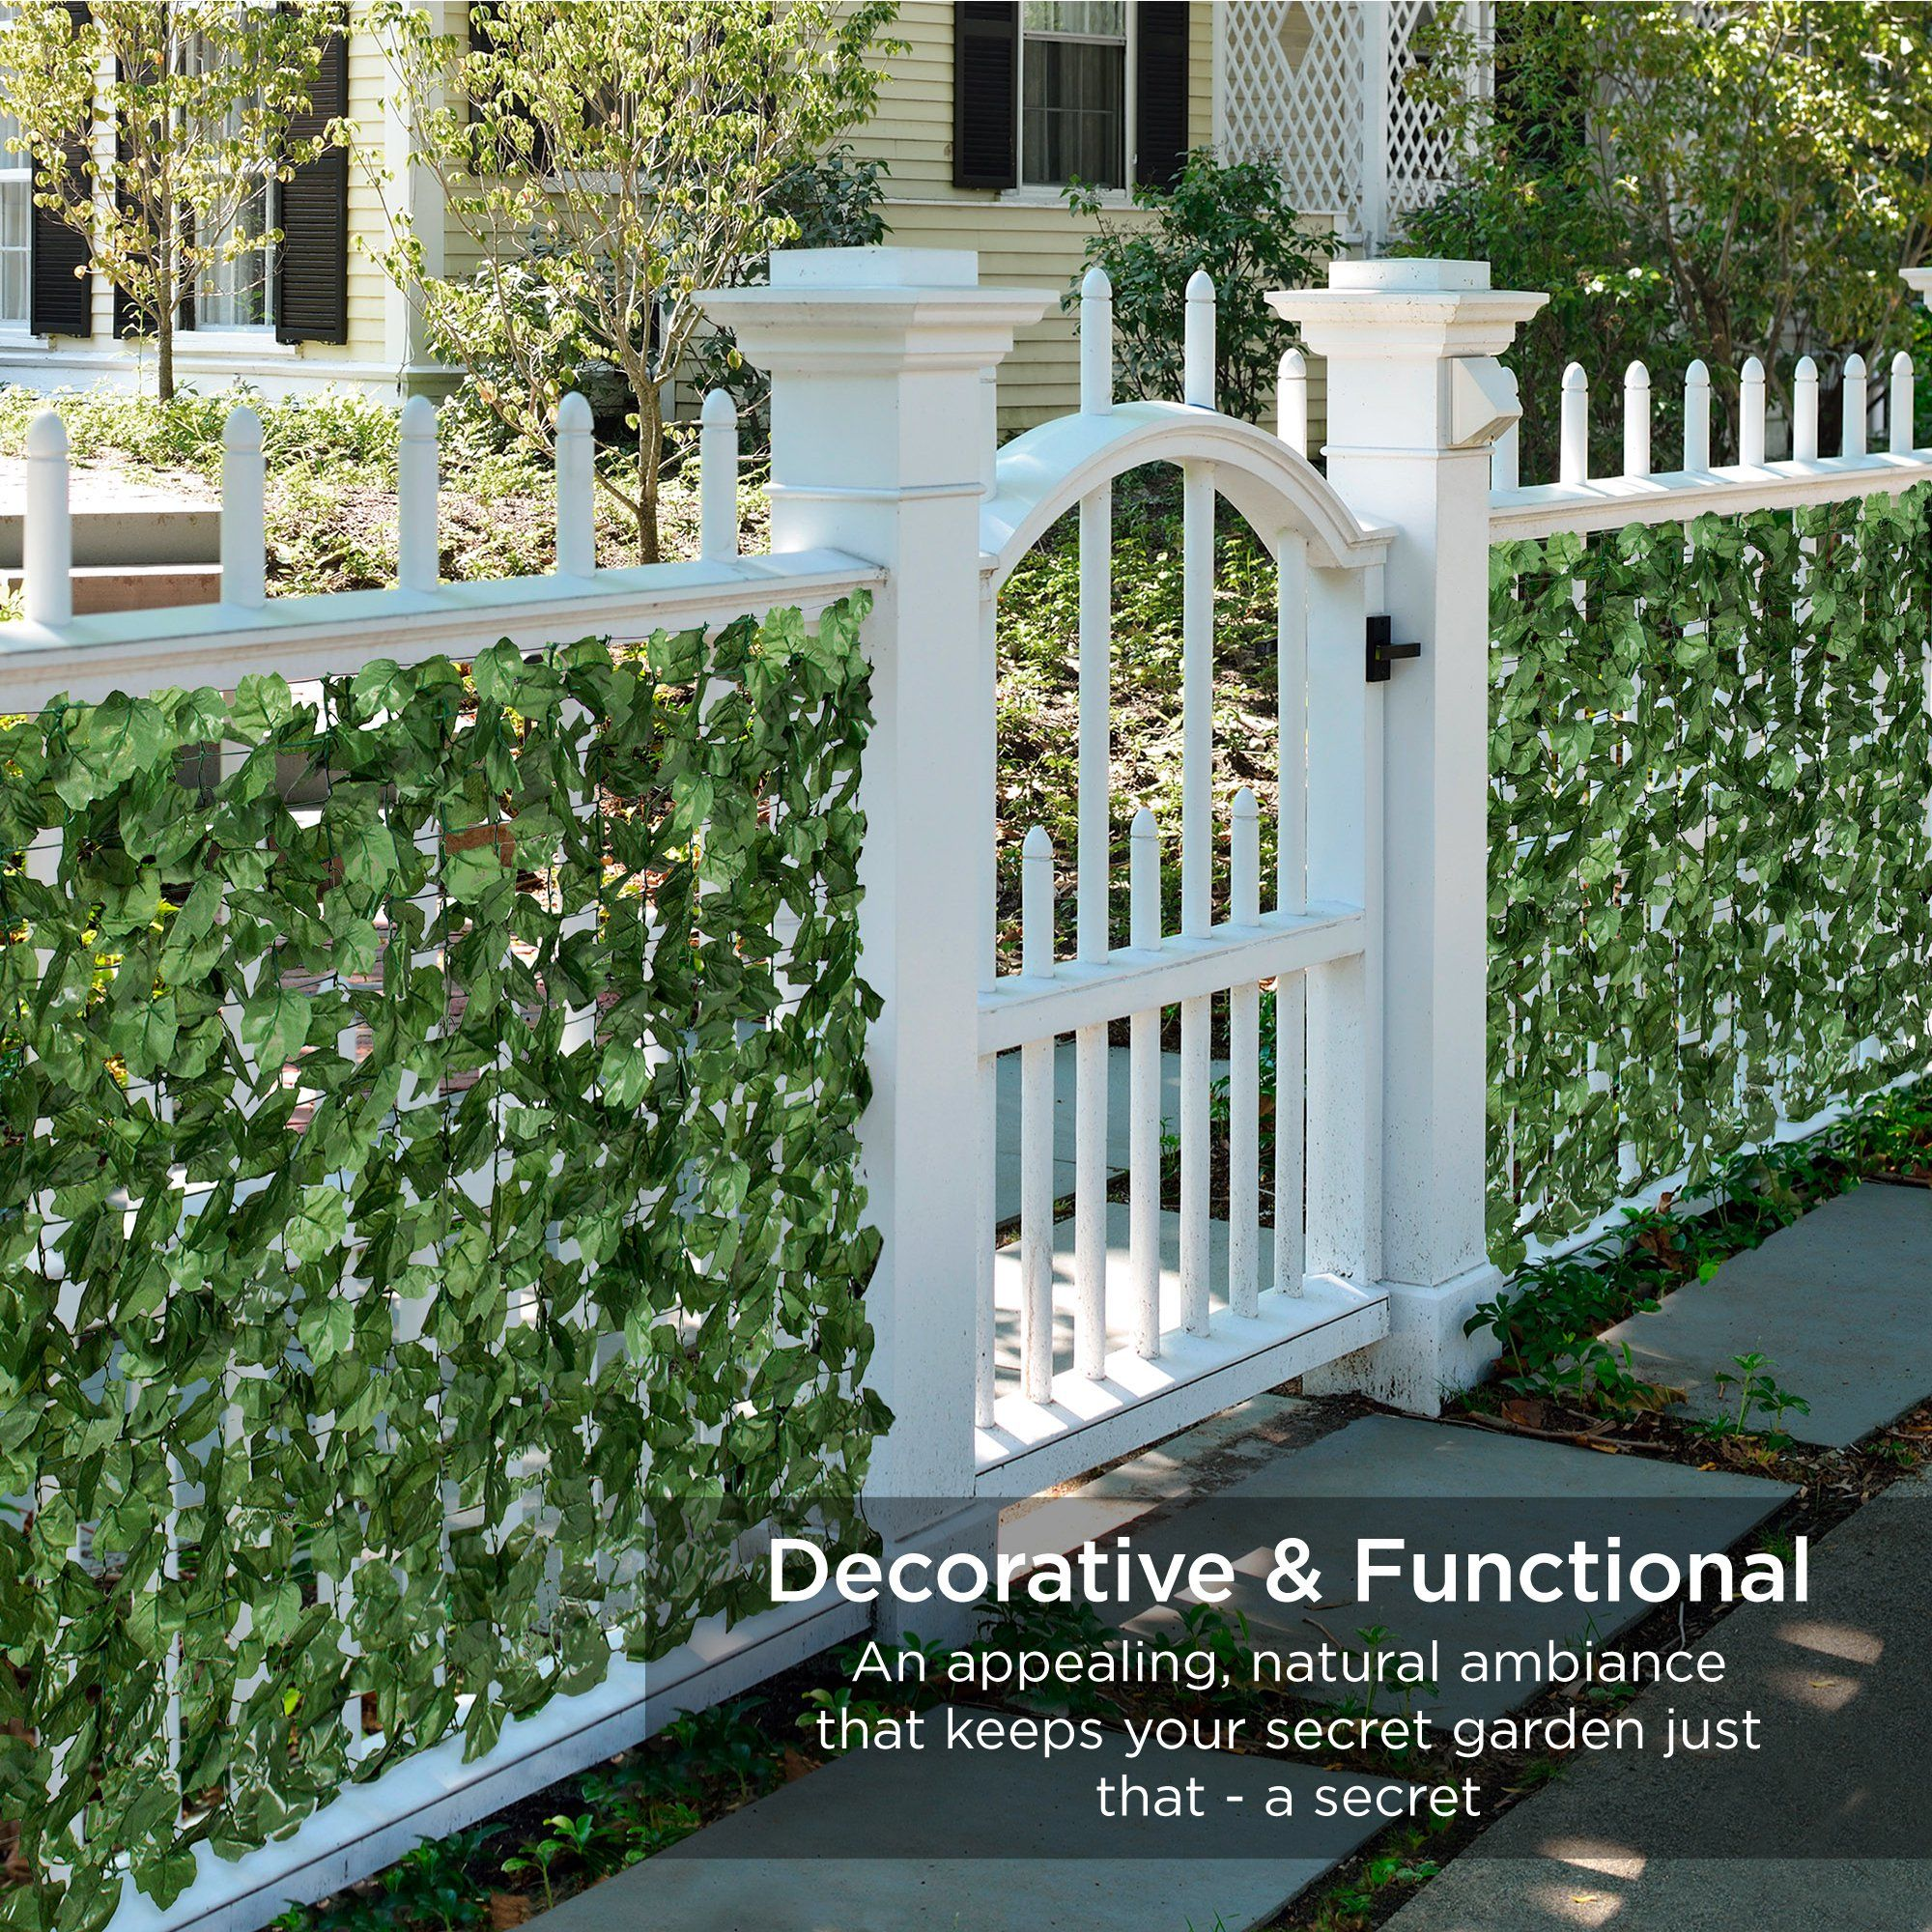 Best Choice Products 94x59in Artificial Faux Ivy Hedge Privacy Fence Screen For Outdoor Decor Garden Yard Green Walmart Com In 2020 Screen Plants Fence Screening Garden Gate Design